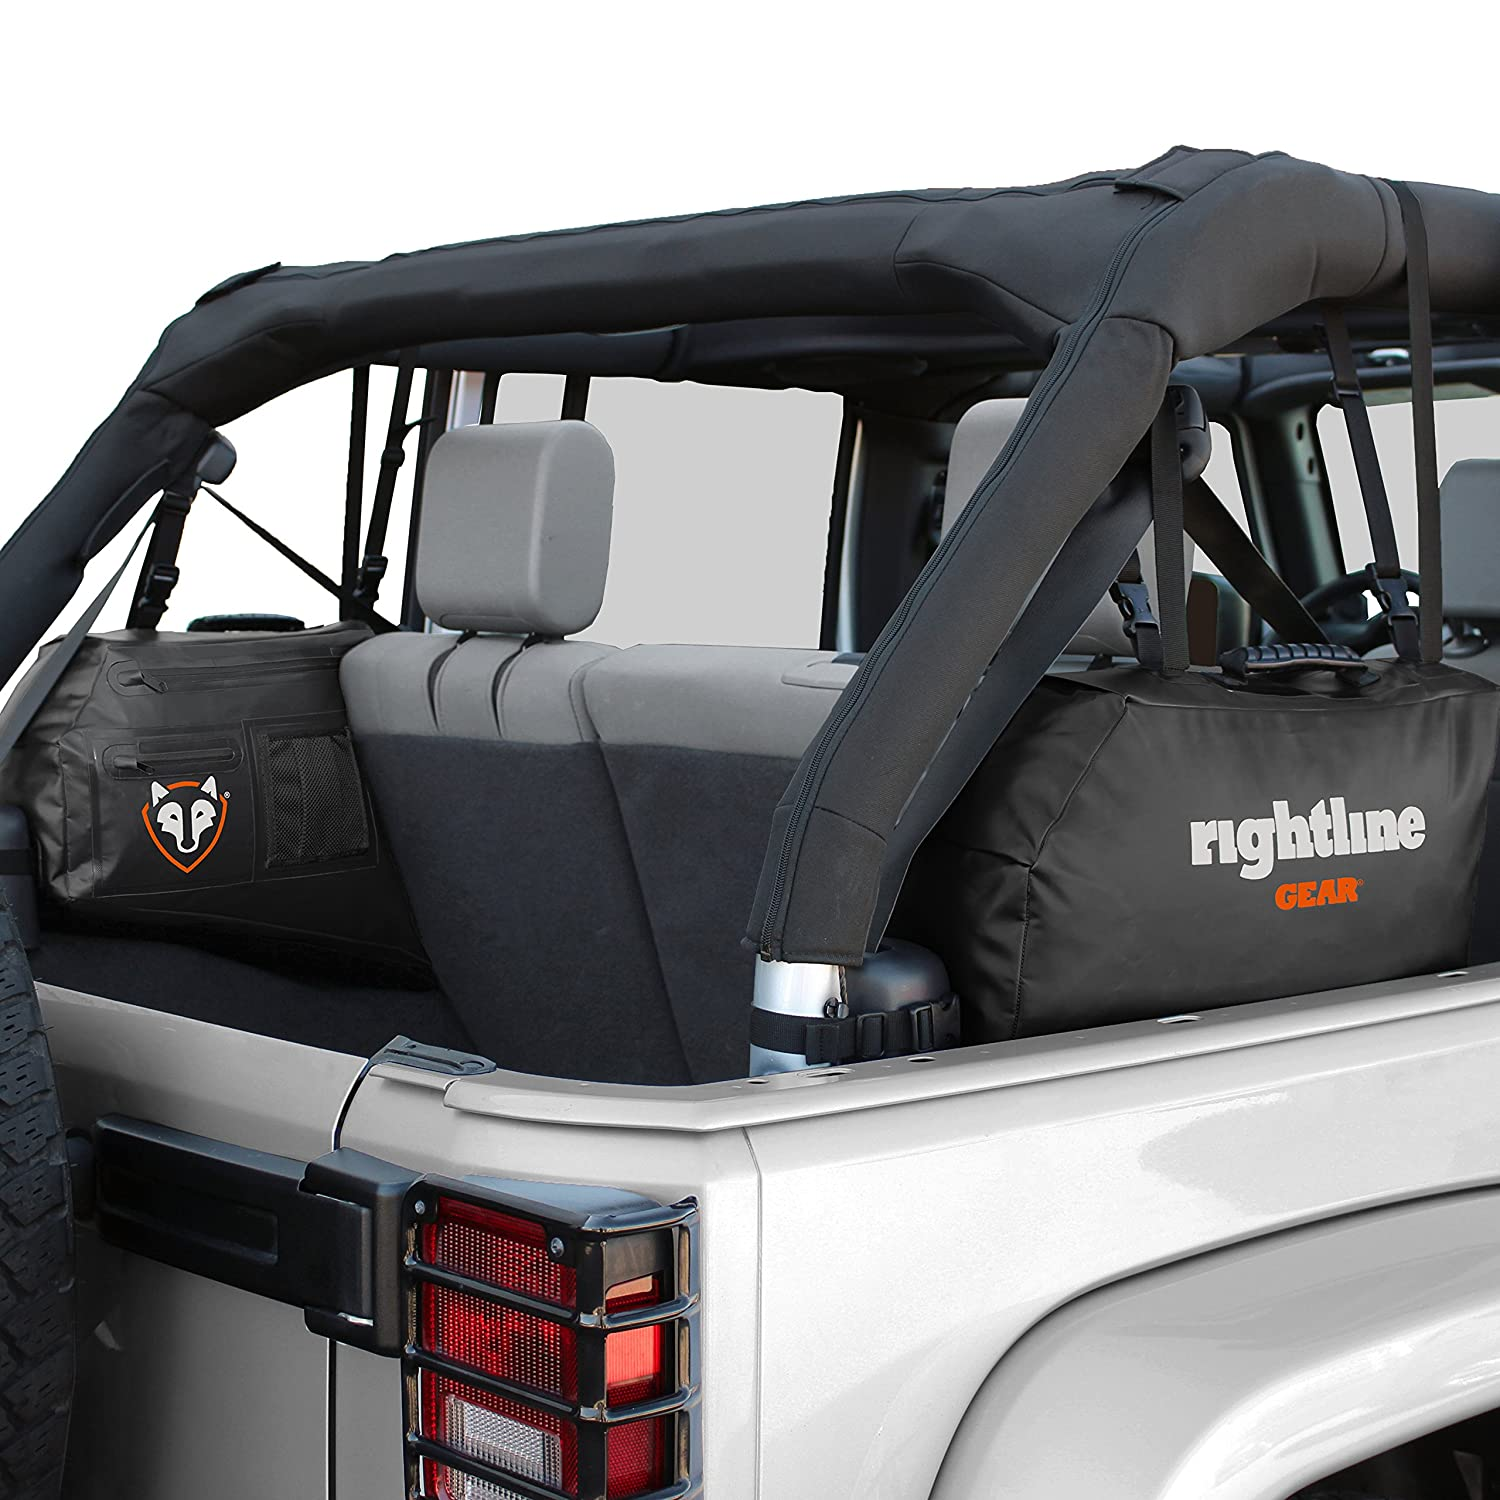 4-Door Rightline Gear 100J75 Side Storage Bags for Jeep Wrangler JK